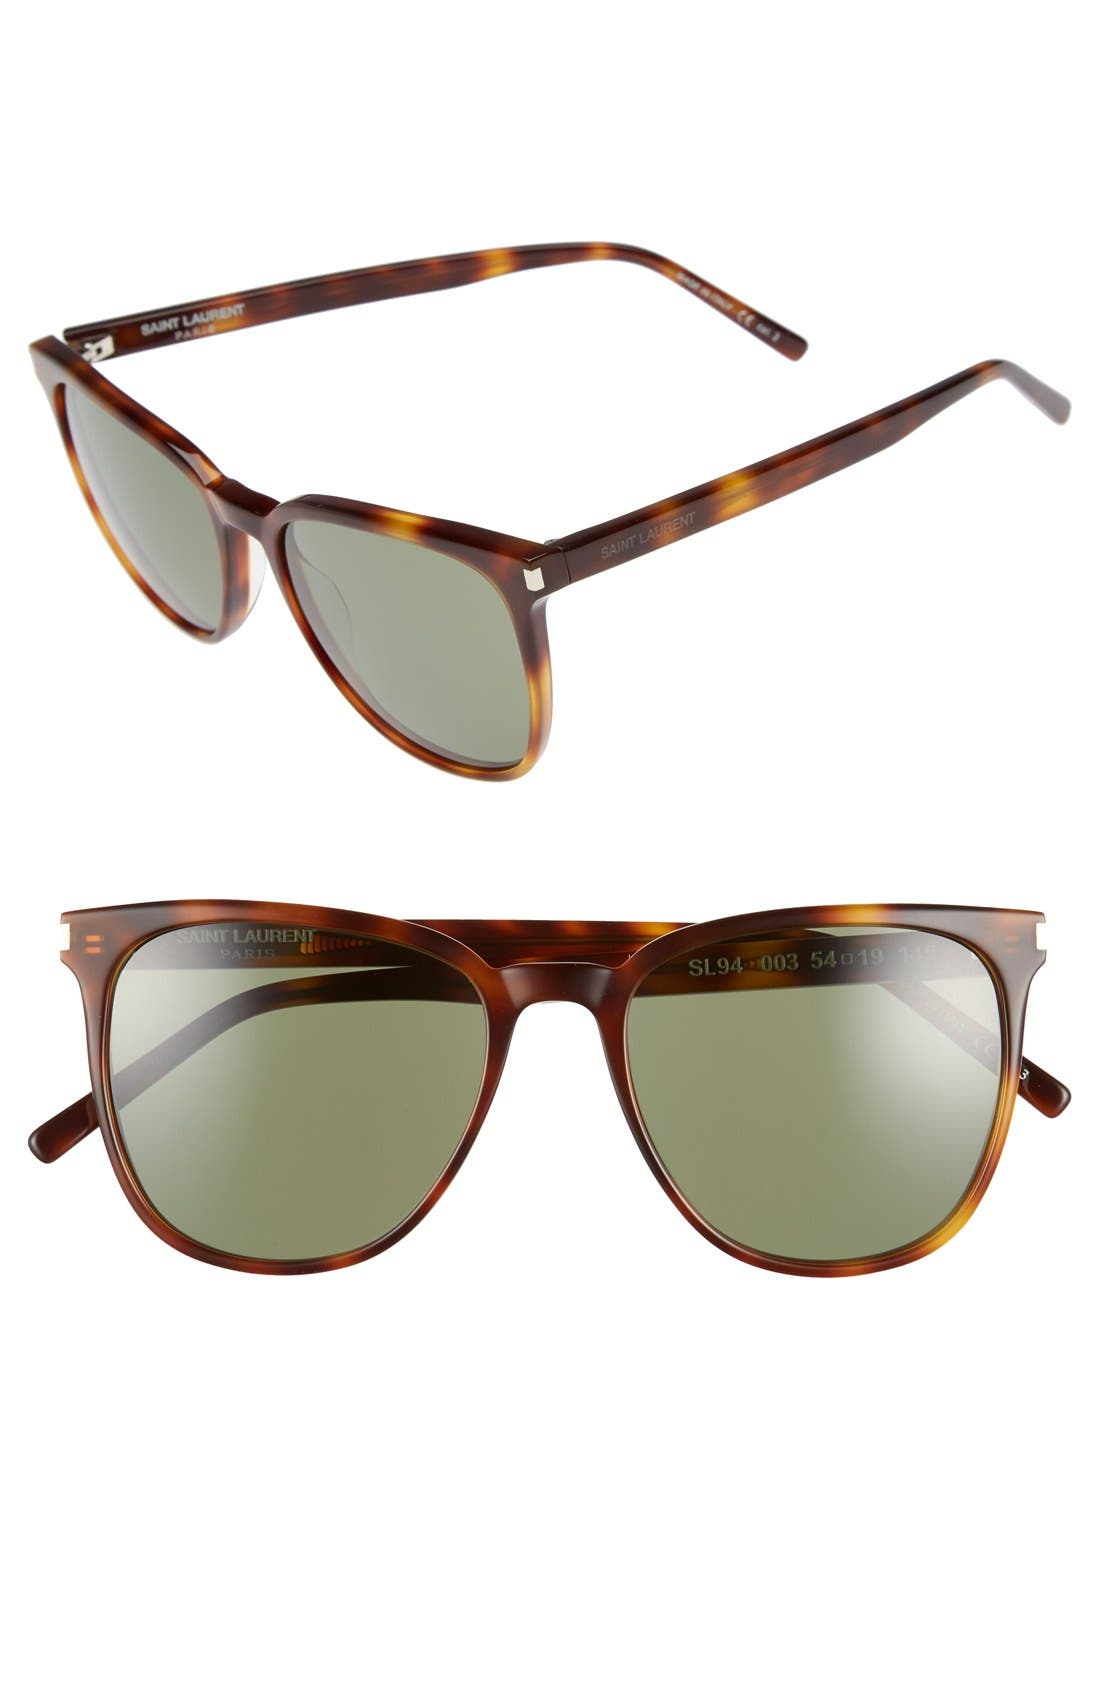 54mm Sunglasses,                             Main thumbnail 2, color,